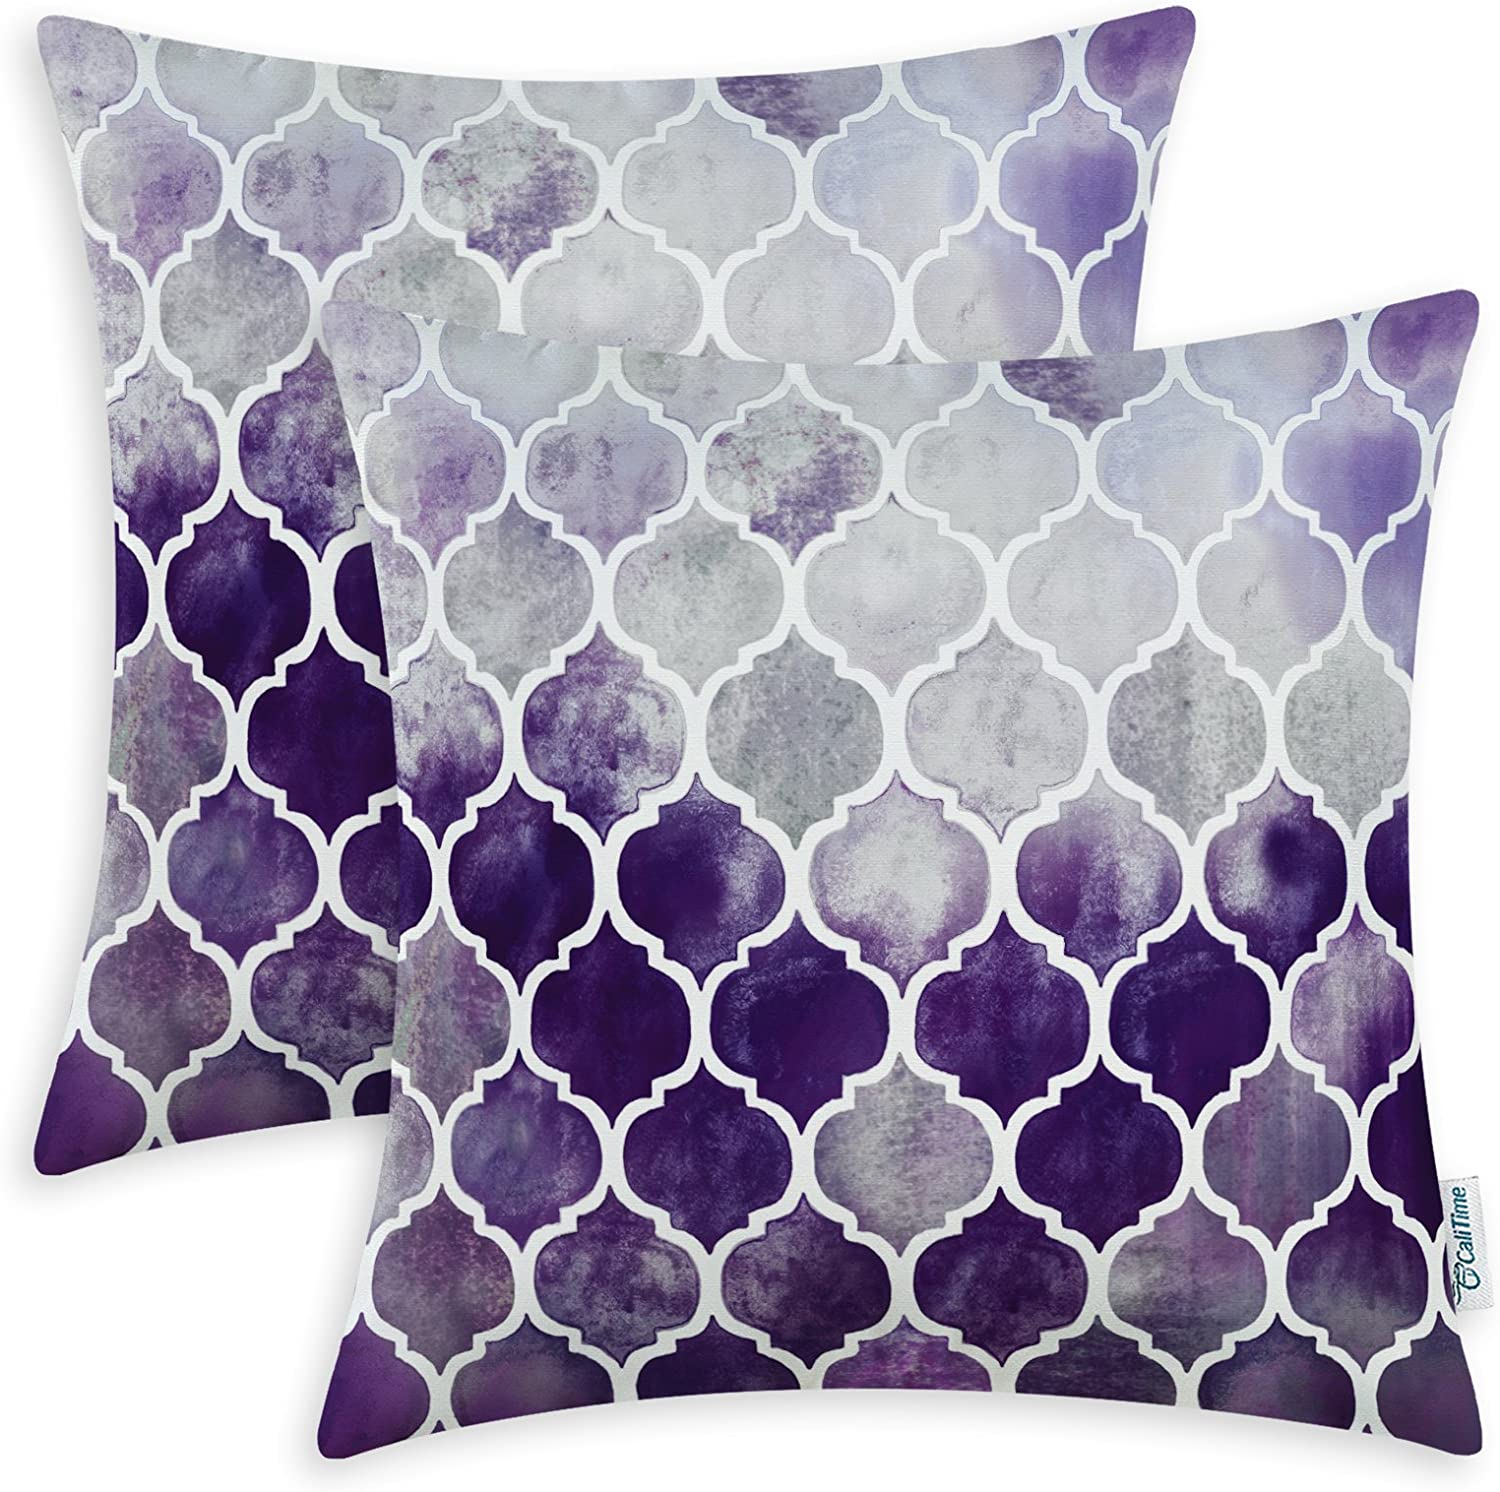 Bombing free shipping CaliTime Pack Tulsa Mall of 2 Cozy Throw Couch Covers Pillow Cases for Bed